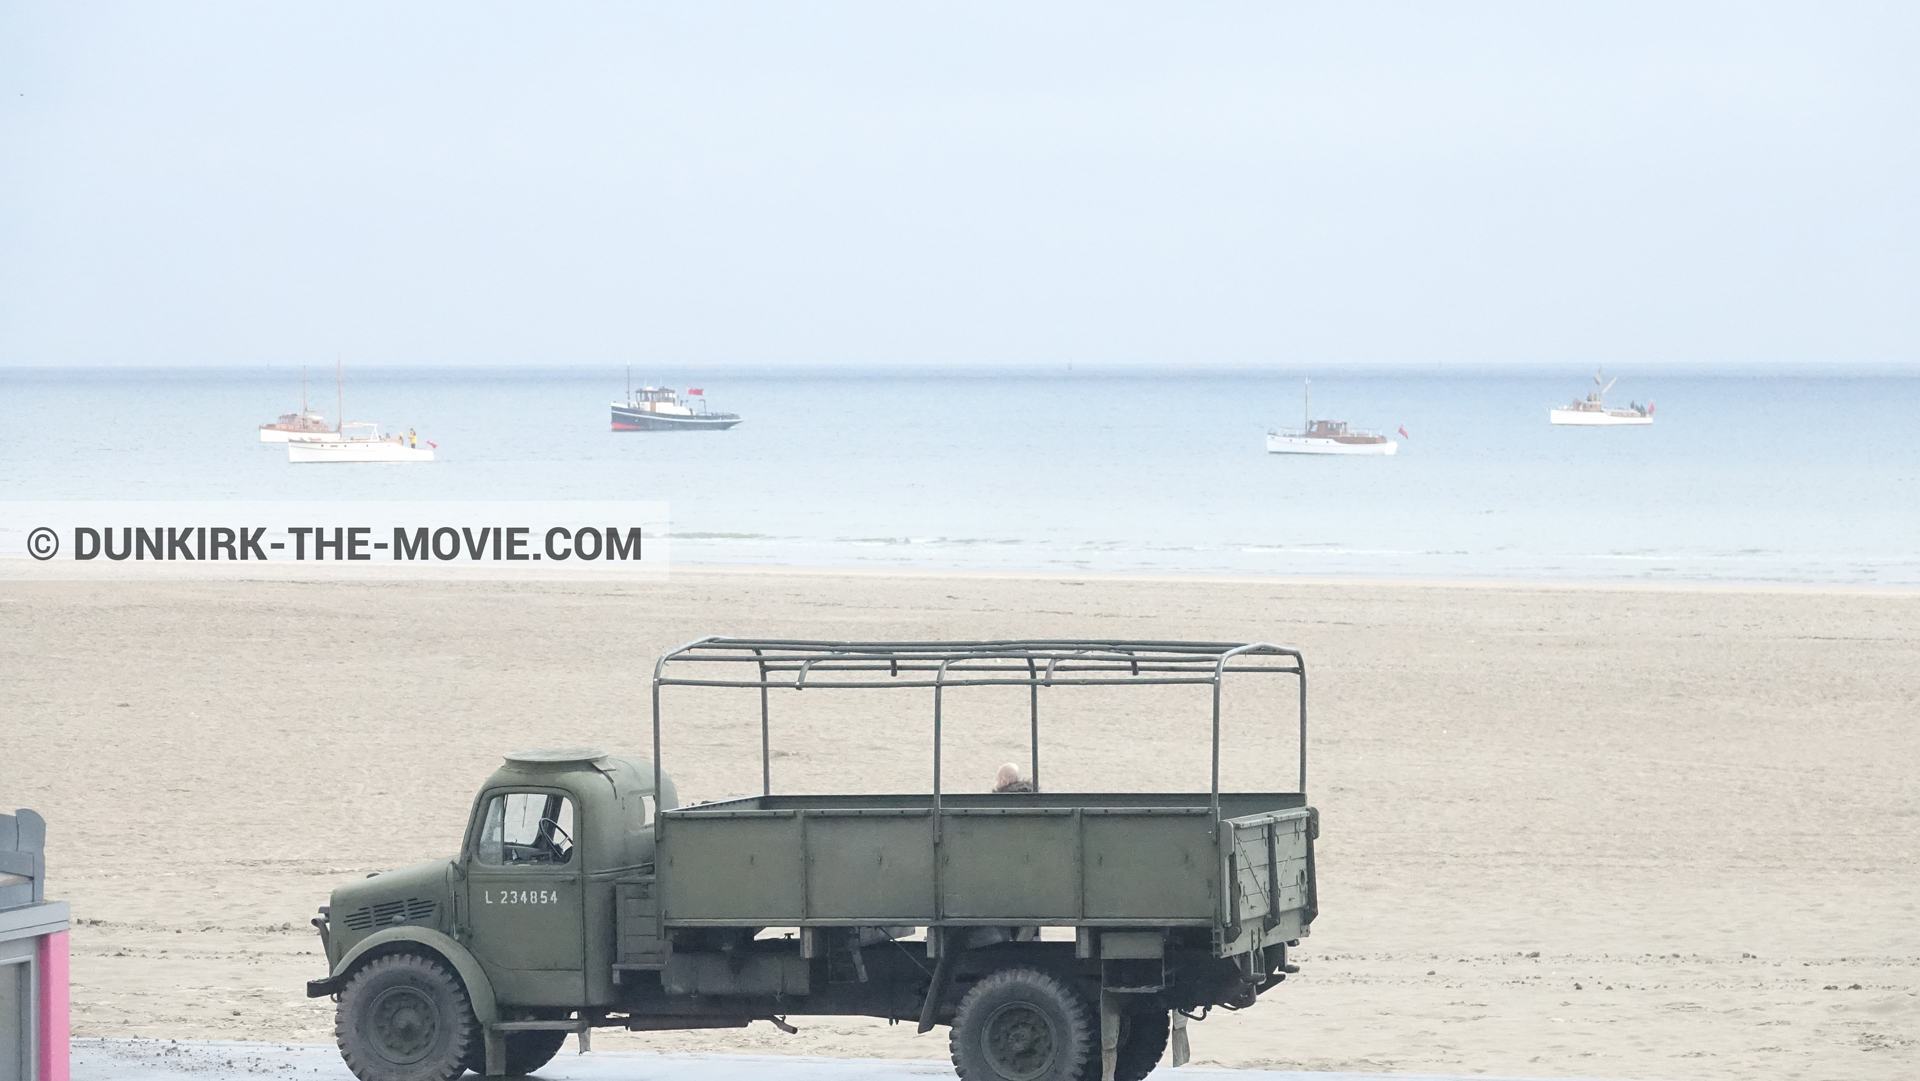 Picture with boat, truck, beach,  from behind the scene of the Dunkirk movie by Nolan